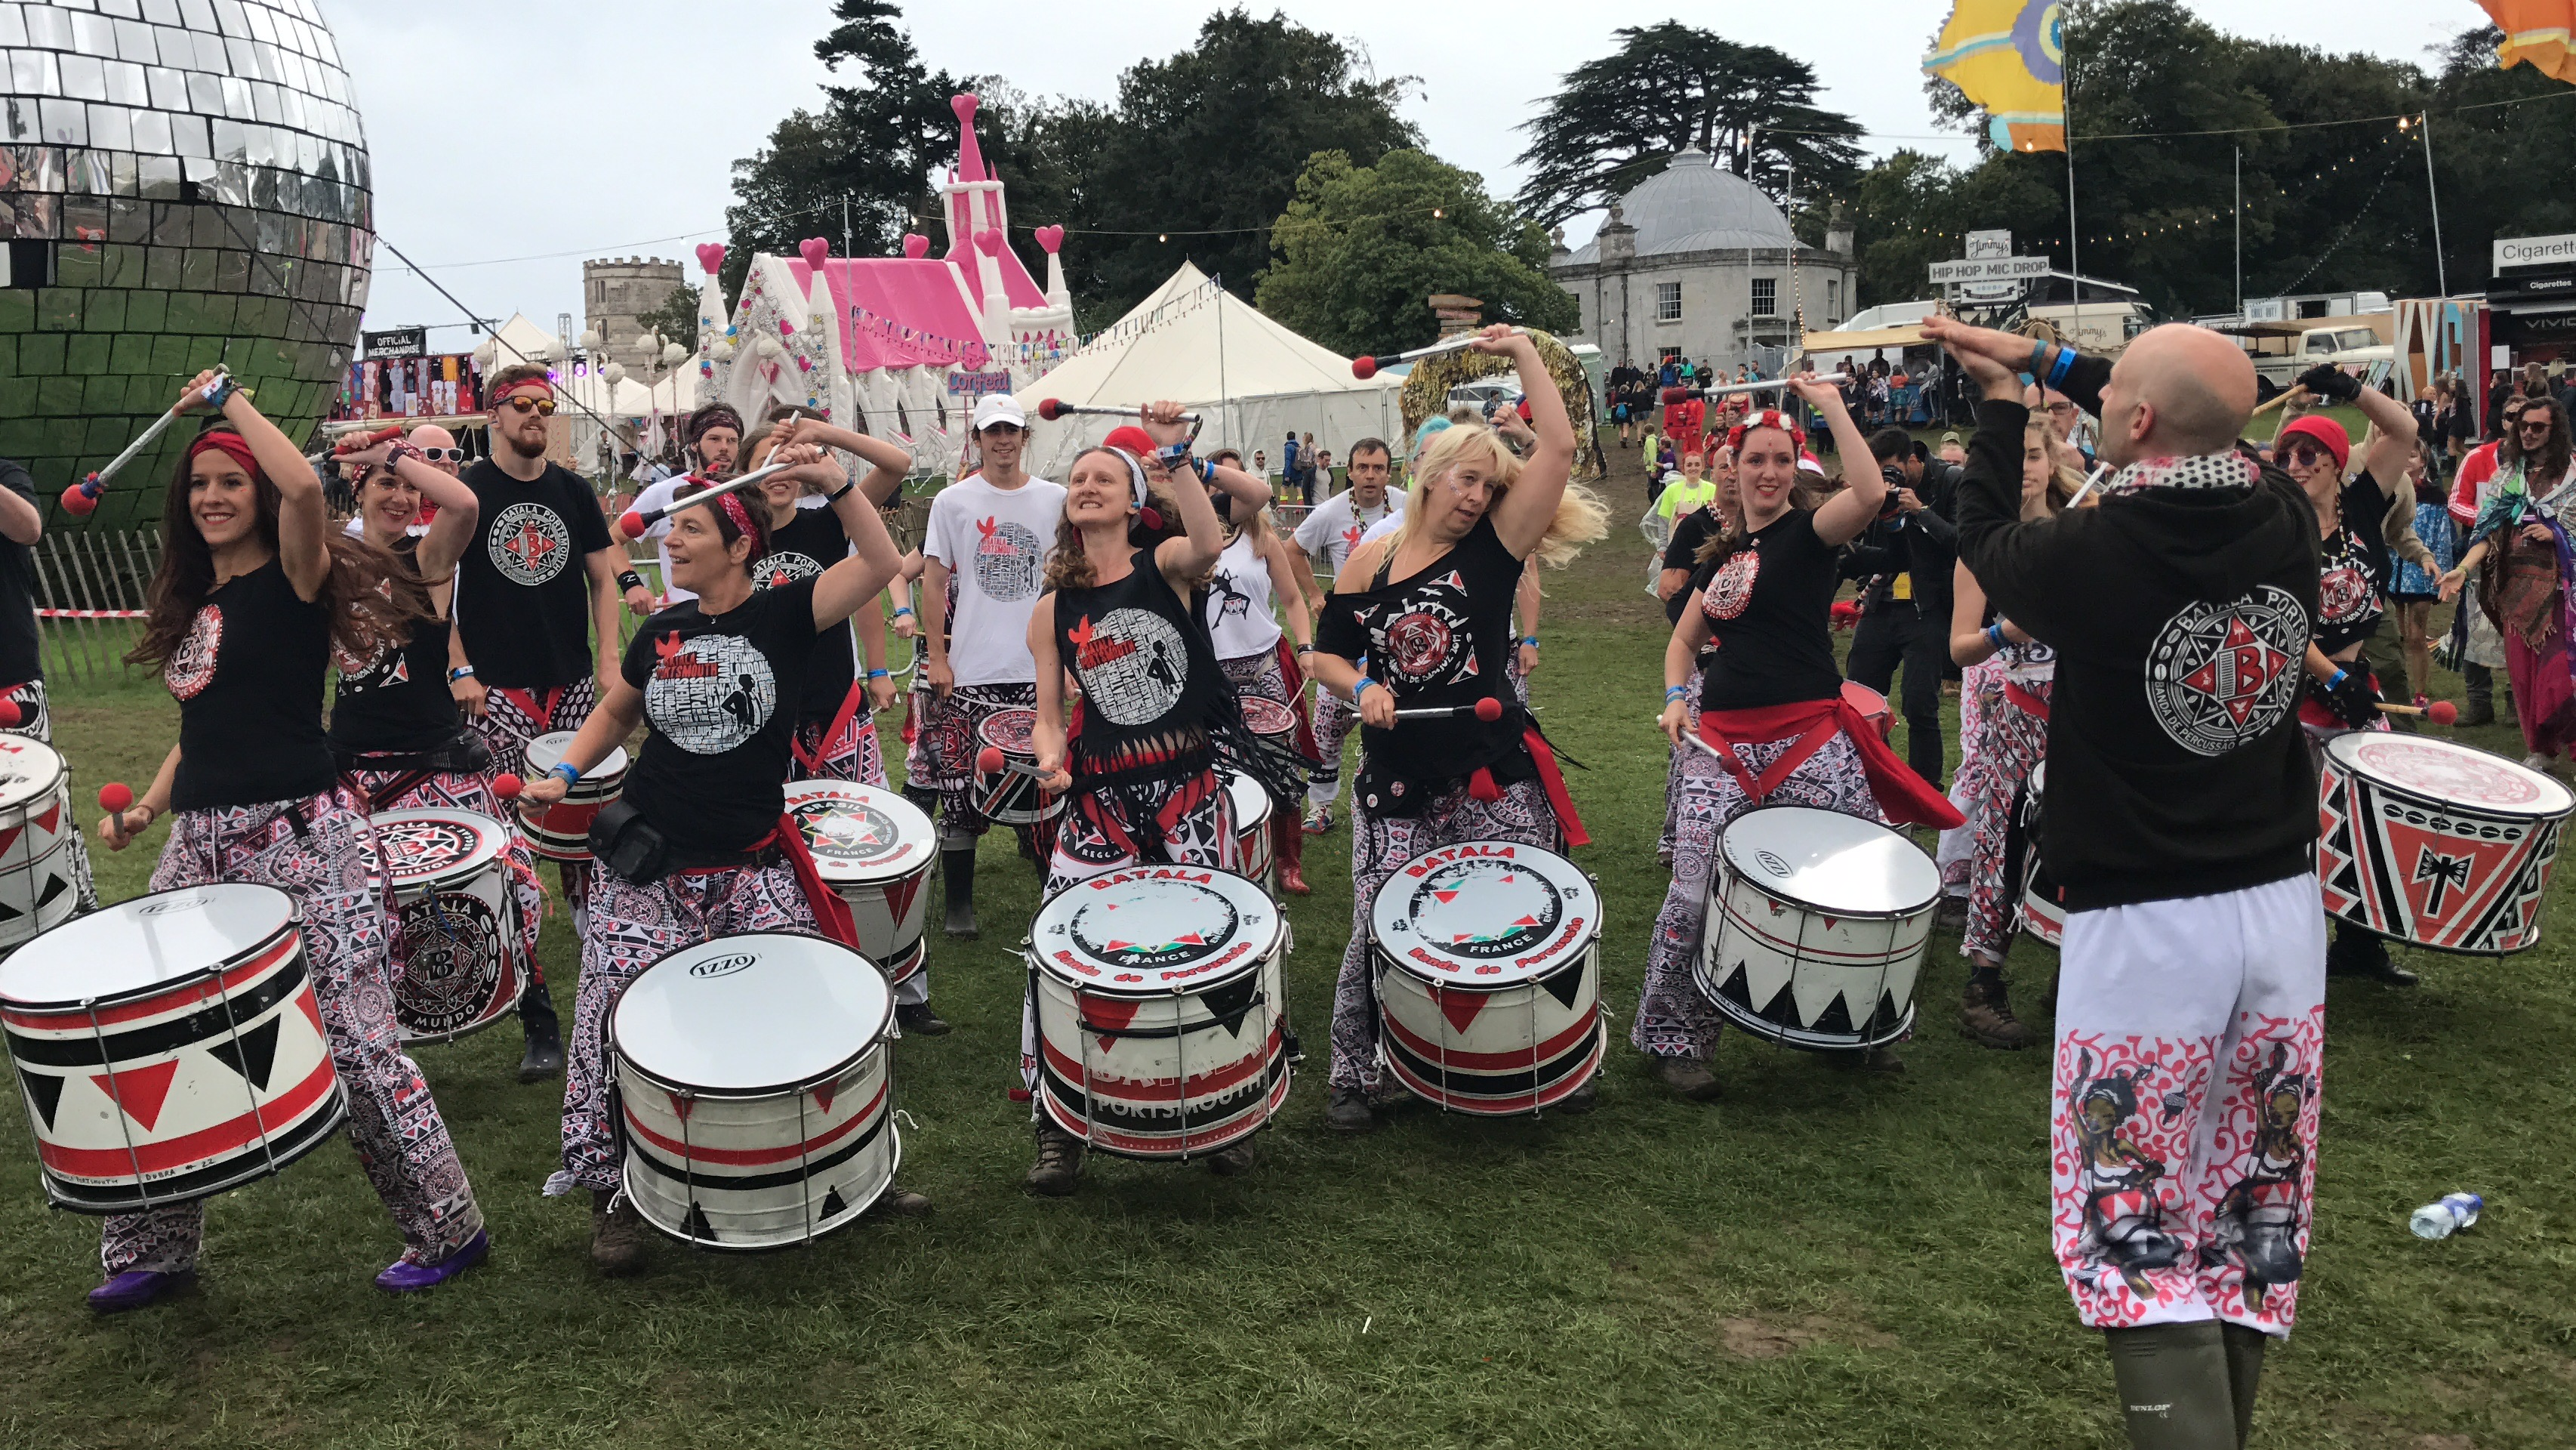 Batala Portsmouth doing their thing drumming at Bestival UK festival